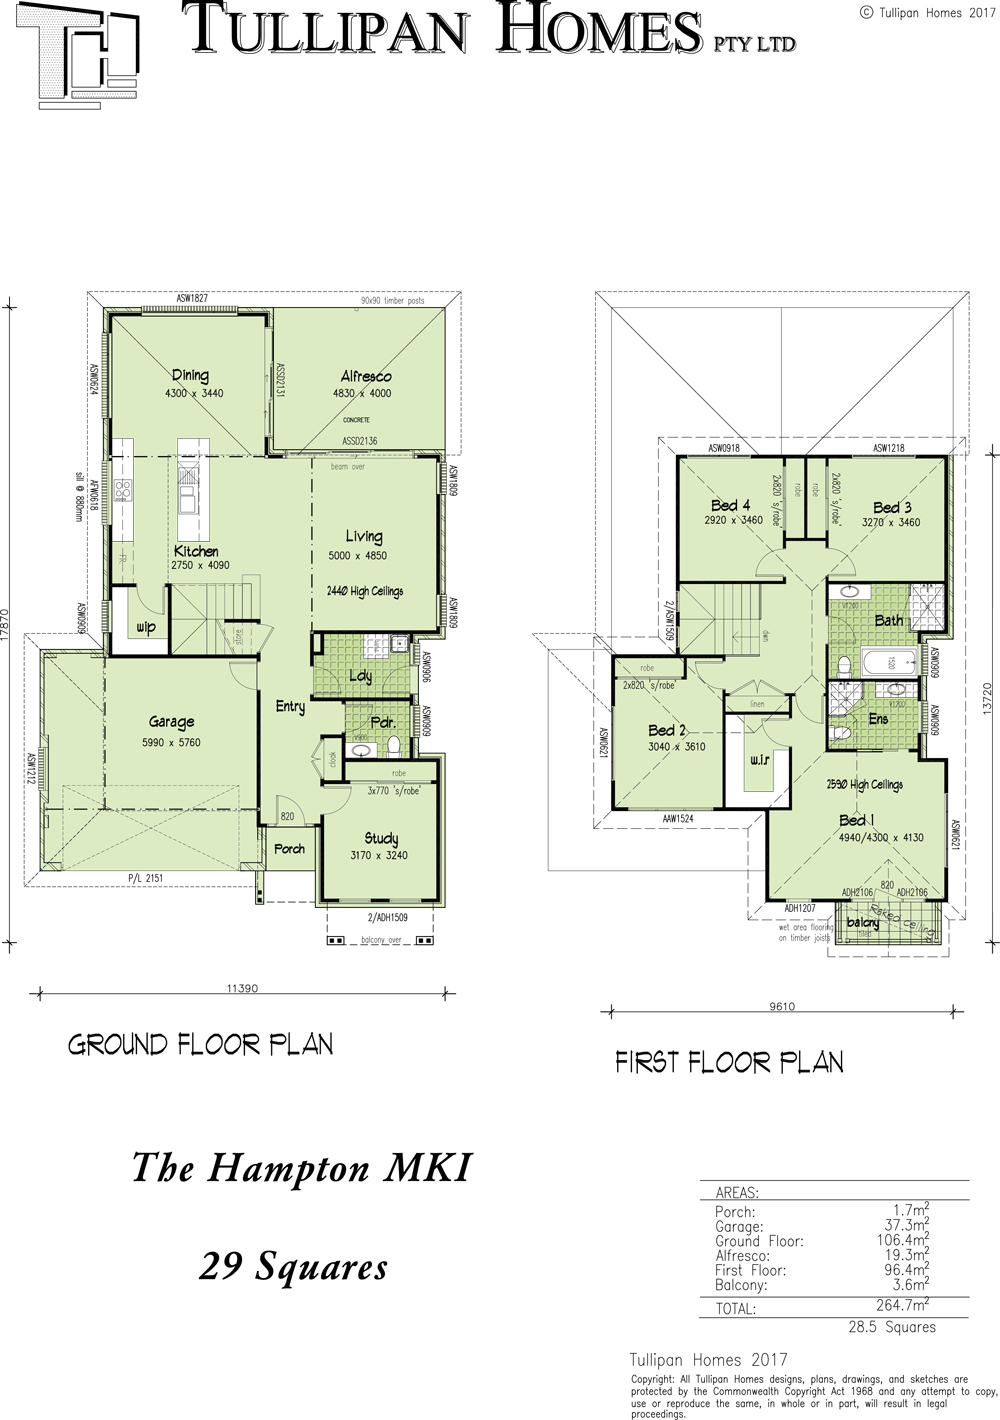 HAMPTON MKI, Home Design, Tullipan Homes